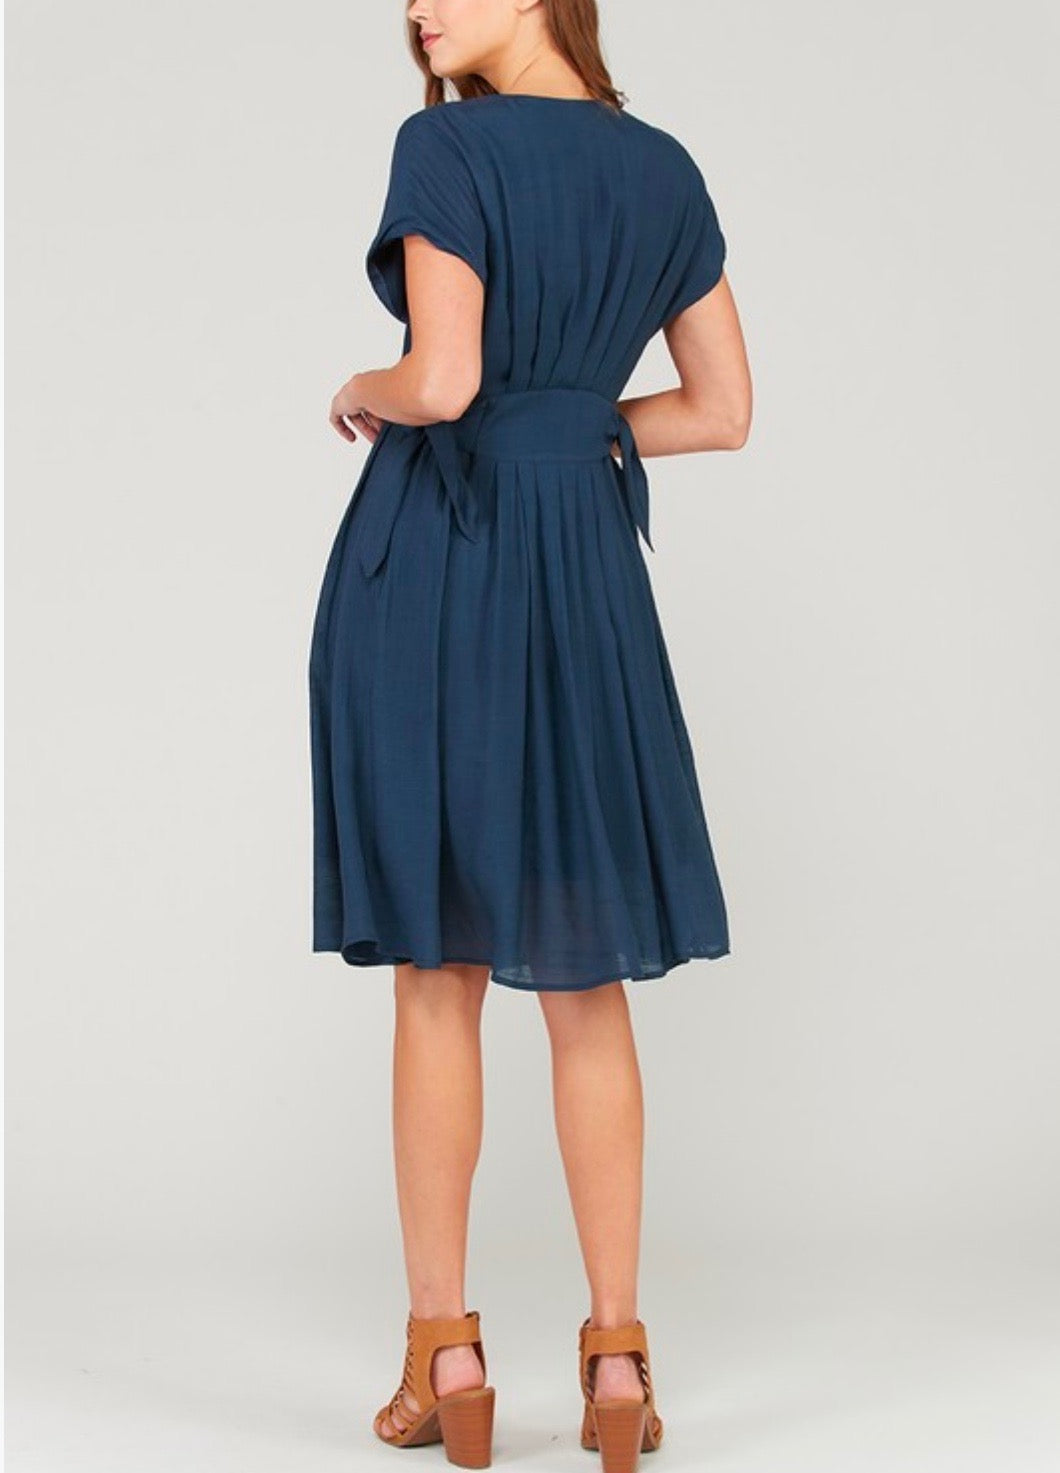 7ee0c015 in the air - woven v neck button down empire waist dress - navy